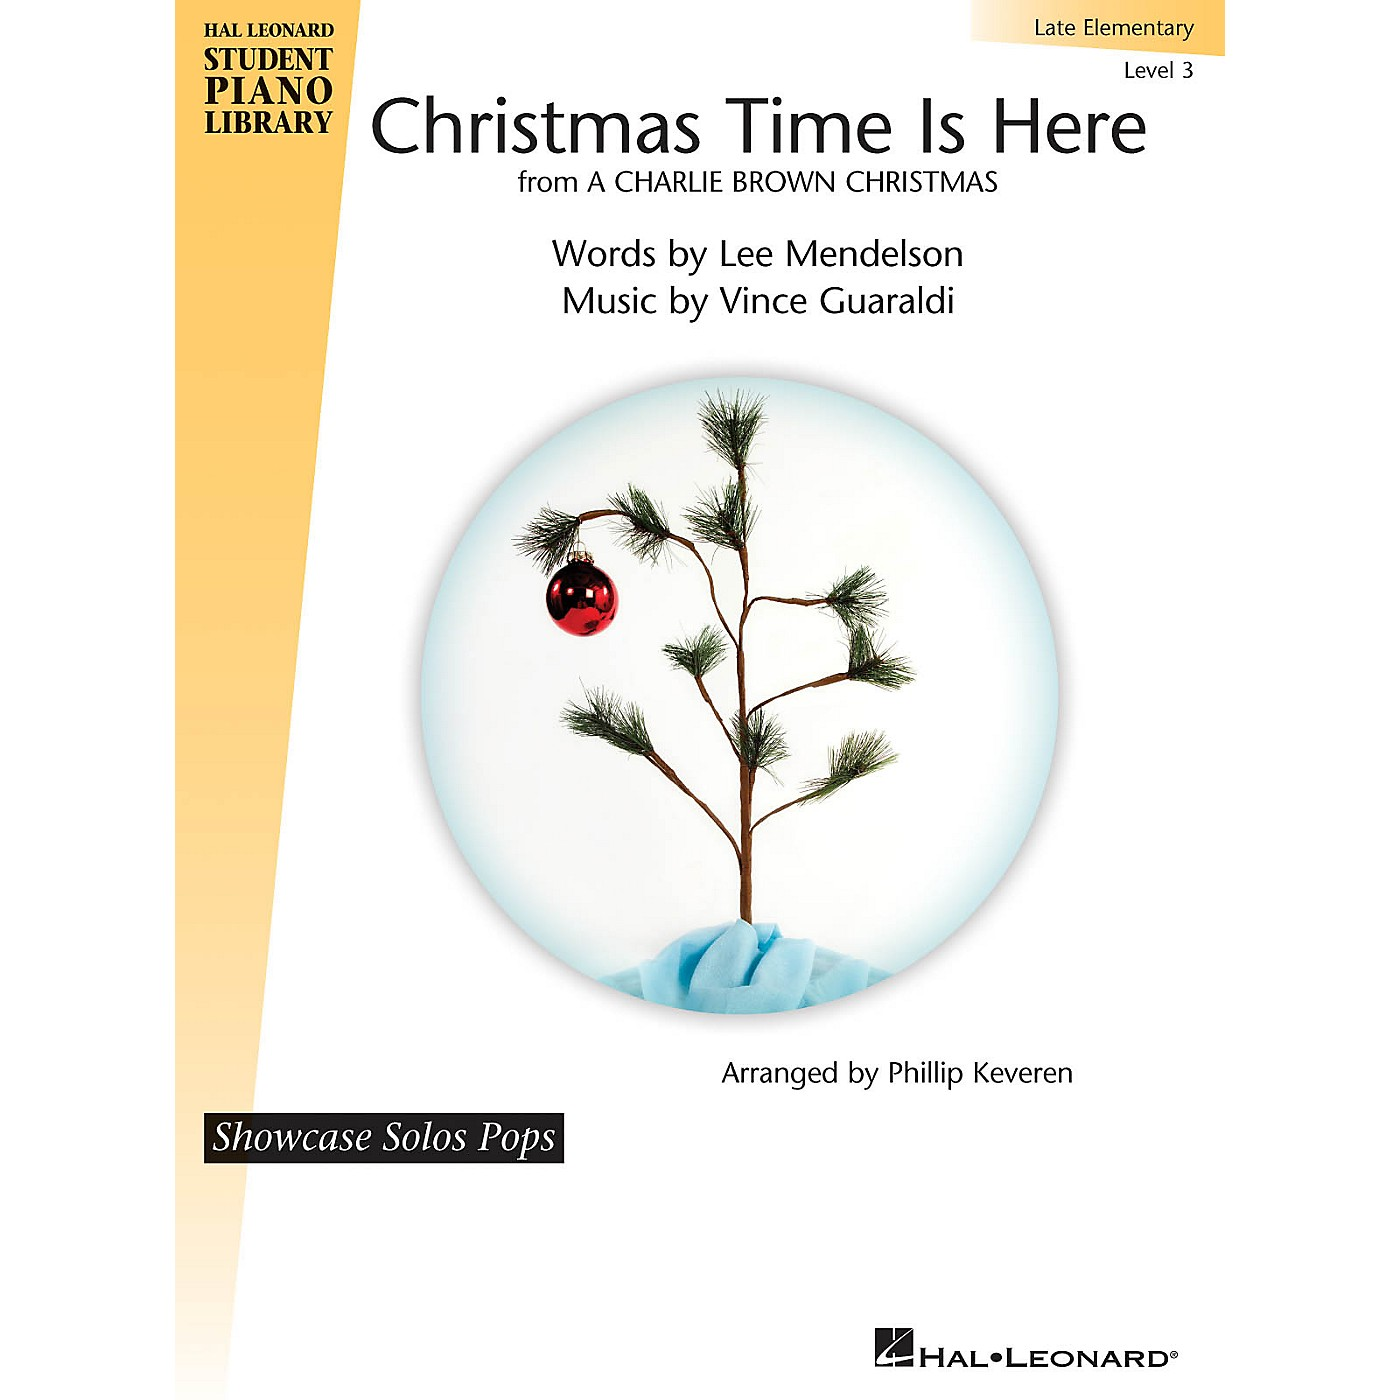 Hal Leonard Christmas Time Is Here Piano Library Series (Level Late Elem) thumbnail